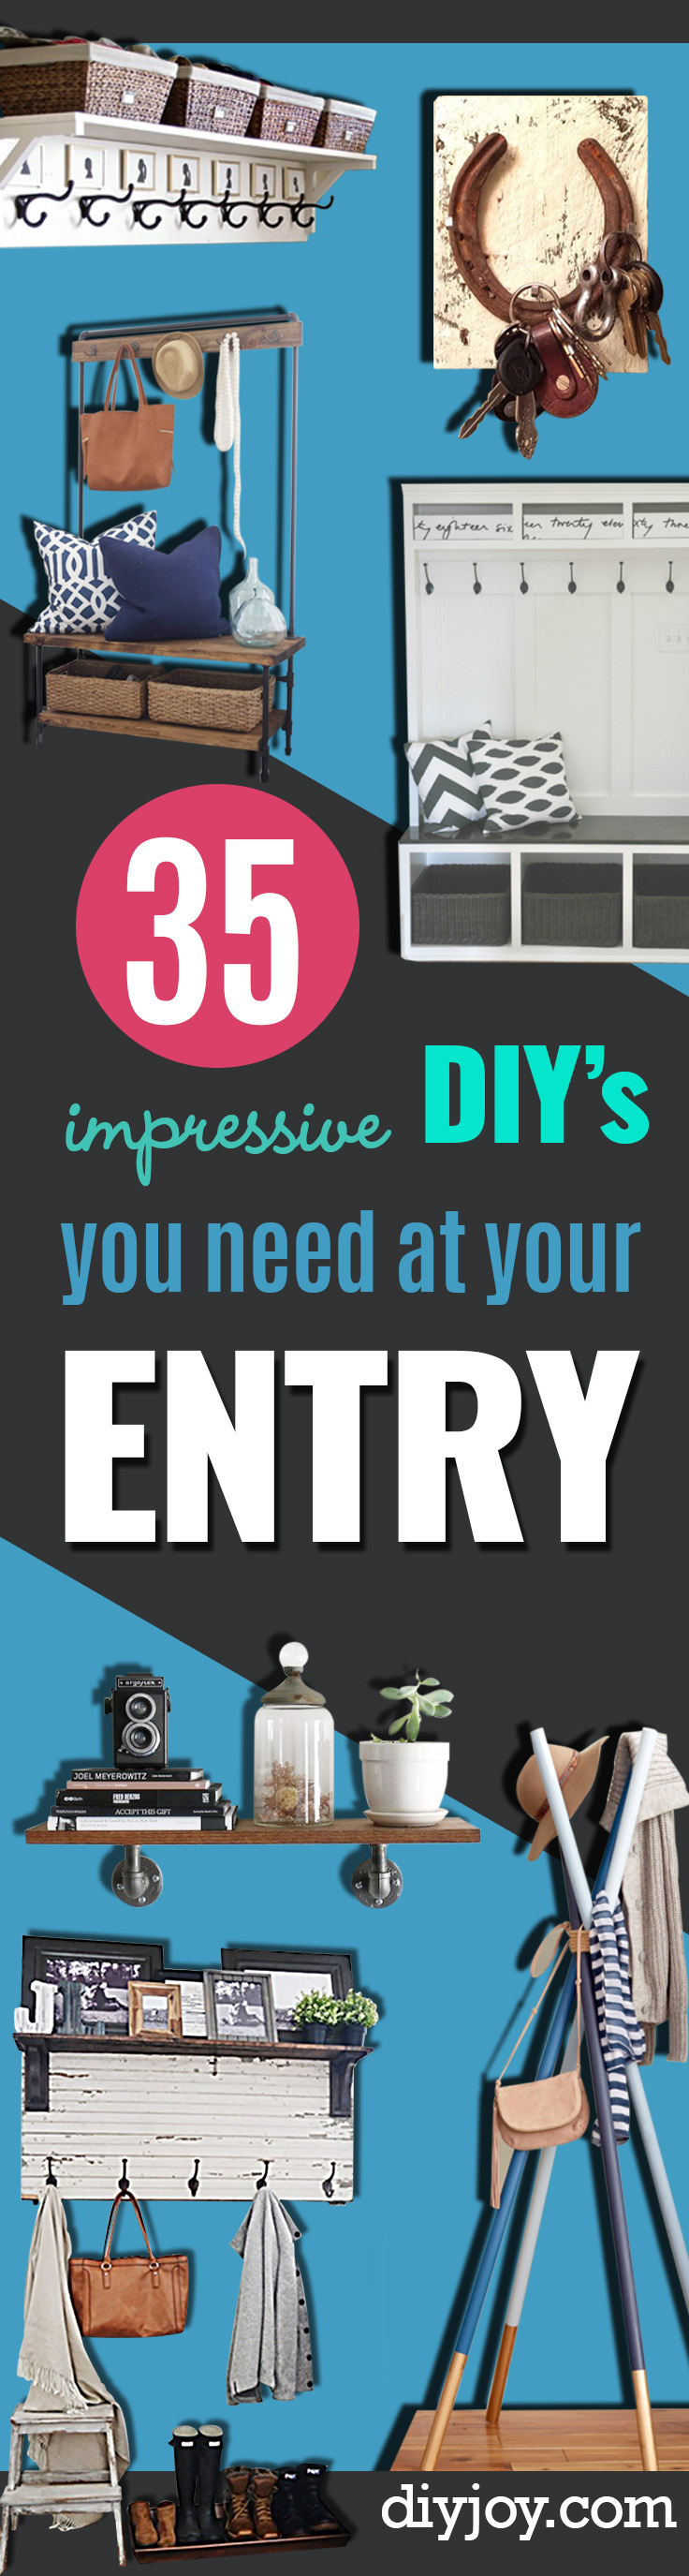 DIY Ideas for Your Entry - Cool and Creative Home Decor or Entryway and Hall. Modern, Rustic and Classic Decor on a Budget. Impress House Guests and Fall in Love With These DIY Furniture and Wall Art Ideas